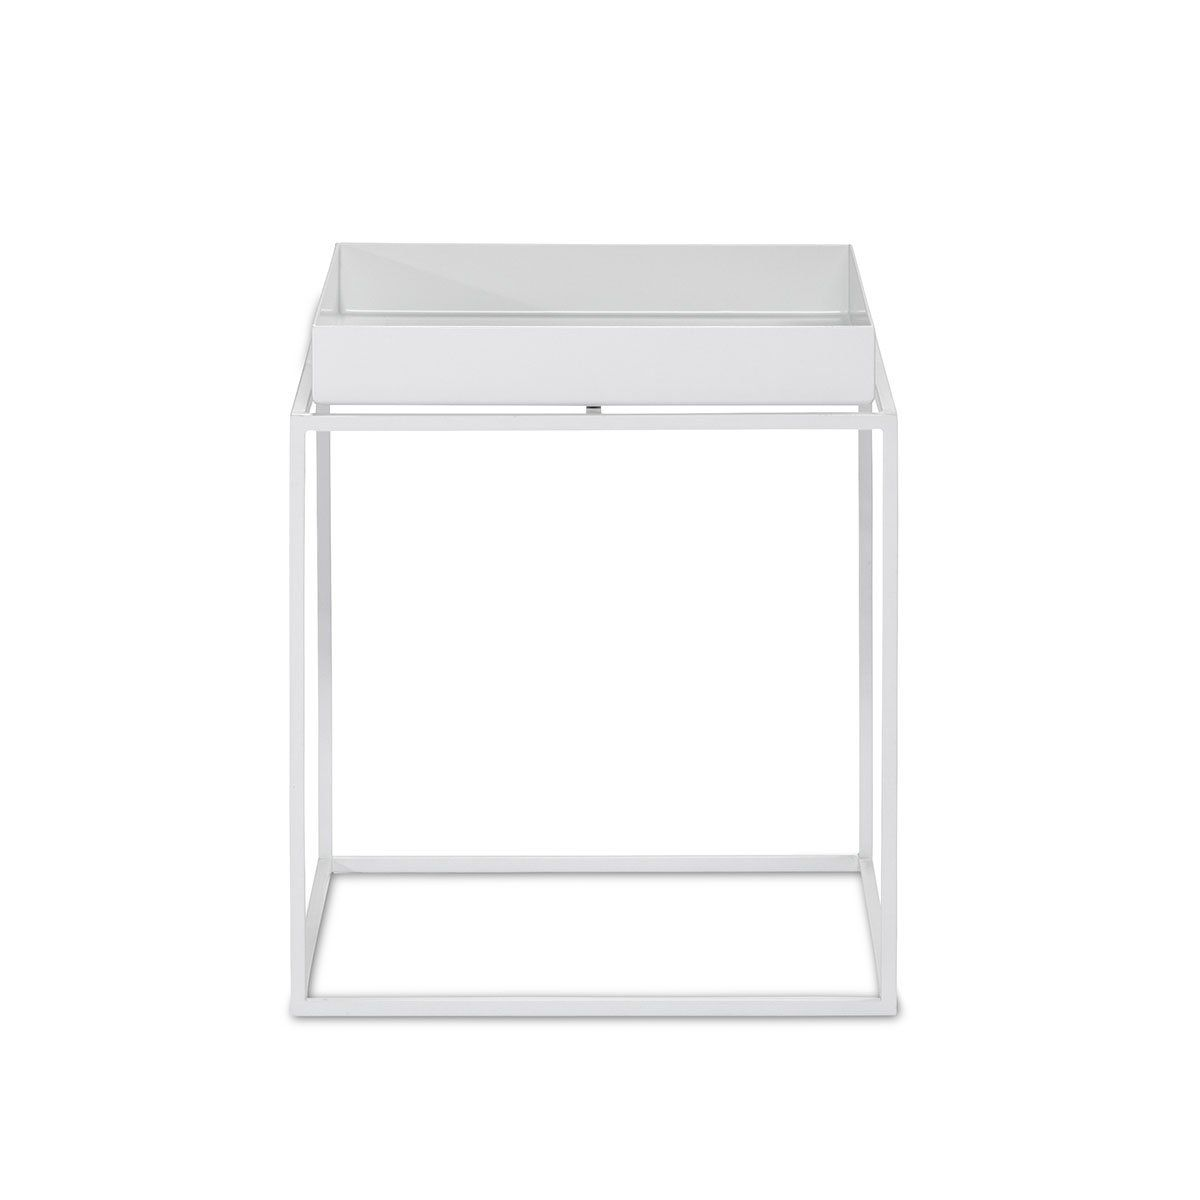 Hay Tray Table Small Weiss Metall Pulverbeschichtet Couchtisch Beistelltisch 30x30xh34 In 2020 Hay Tray Table Tray Table Hay Tray Side Table